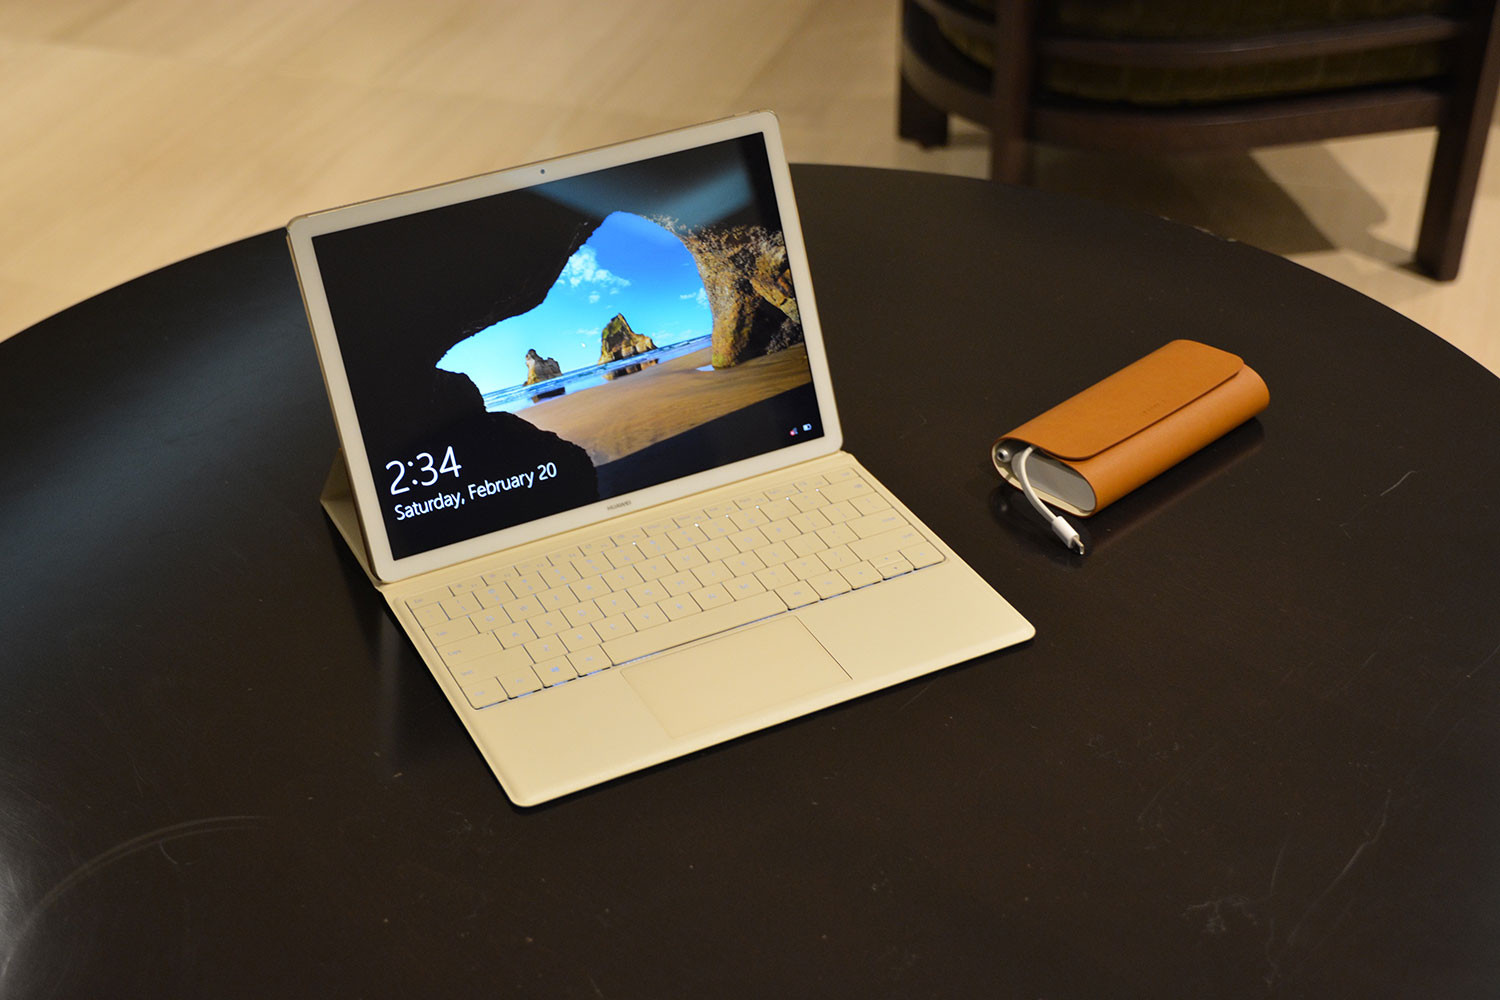 huawei matebook convertible now up for sale at the microsoft store tablet news. Black Bedroom Furniture Sets. Home Design Ideas